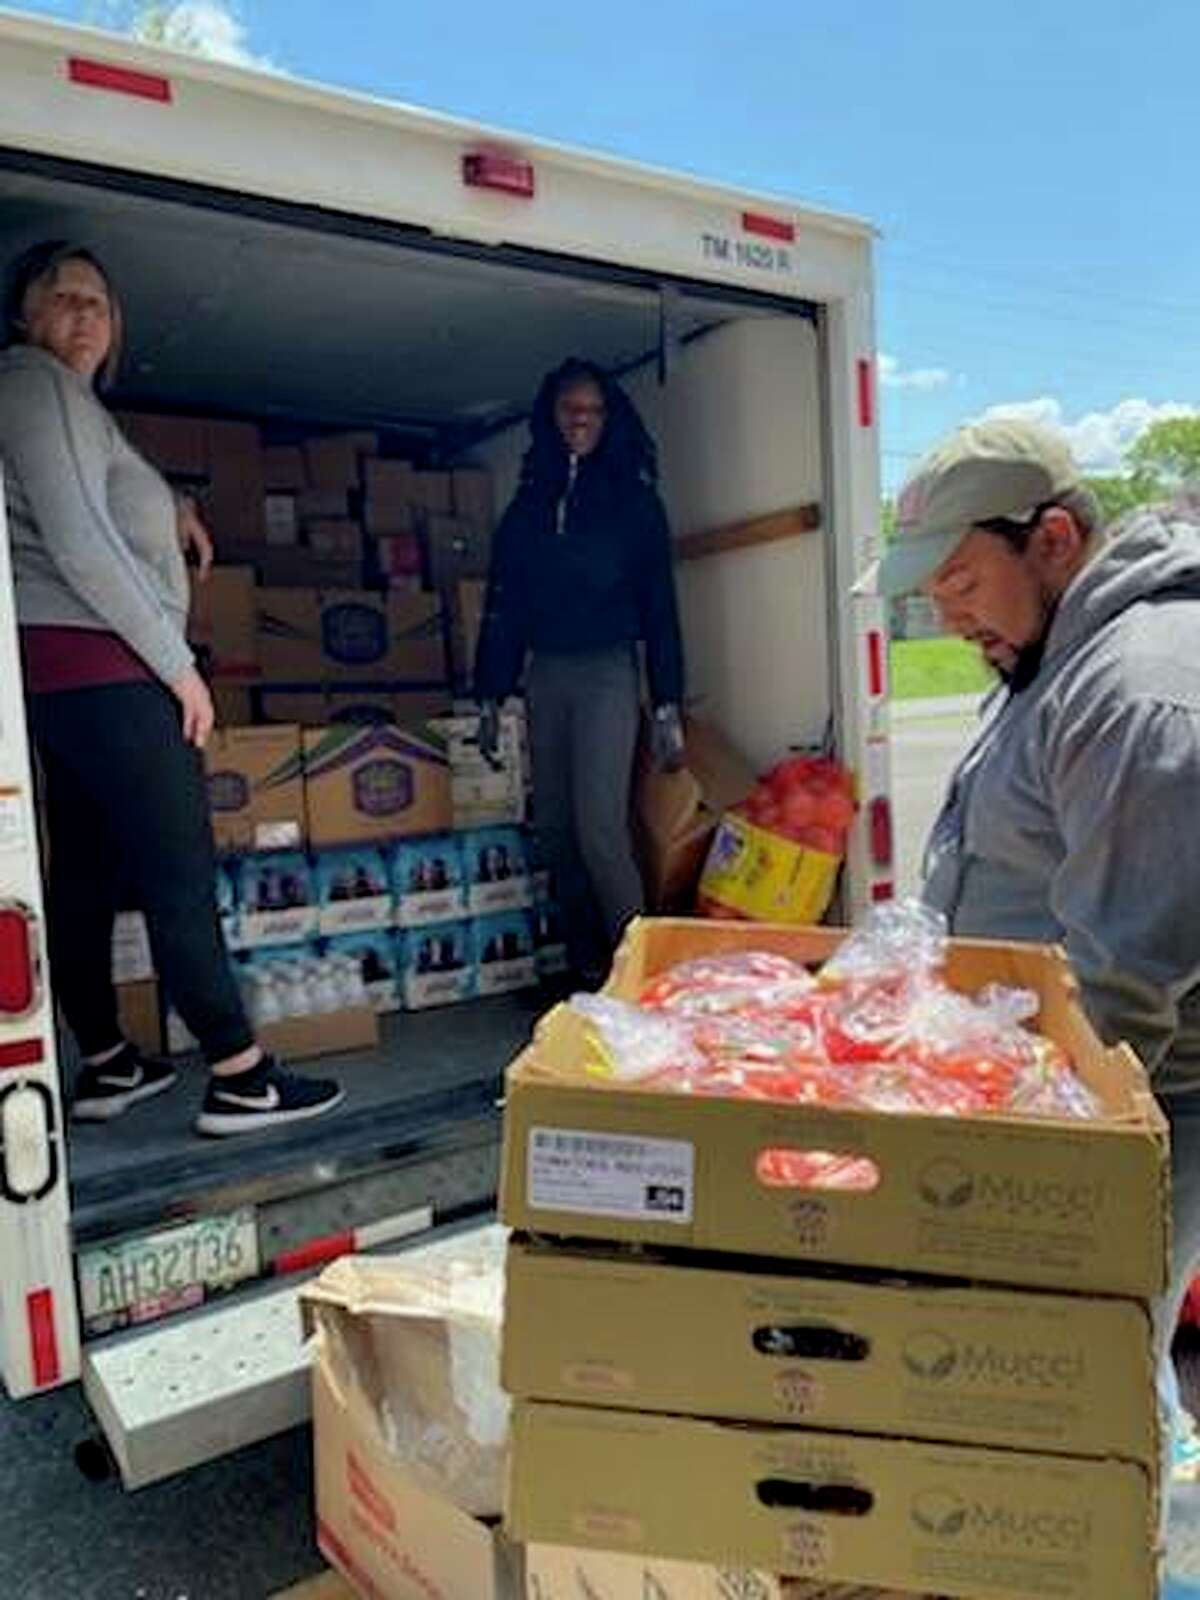 The Storehouse volunteers sort through food donations, including meat, produce and canned goods. A Friday opening is planned for the food pantry at 3420 College Ave., Alton.